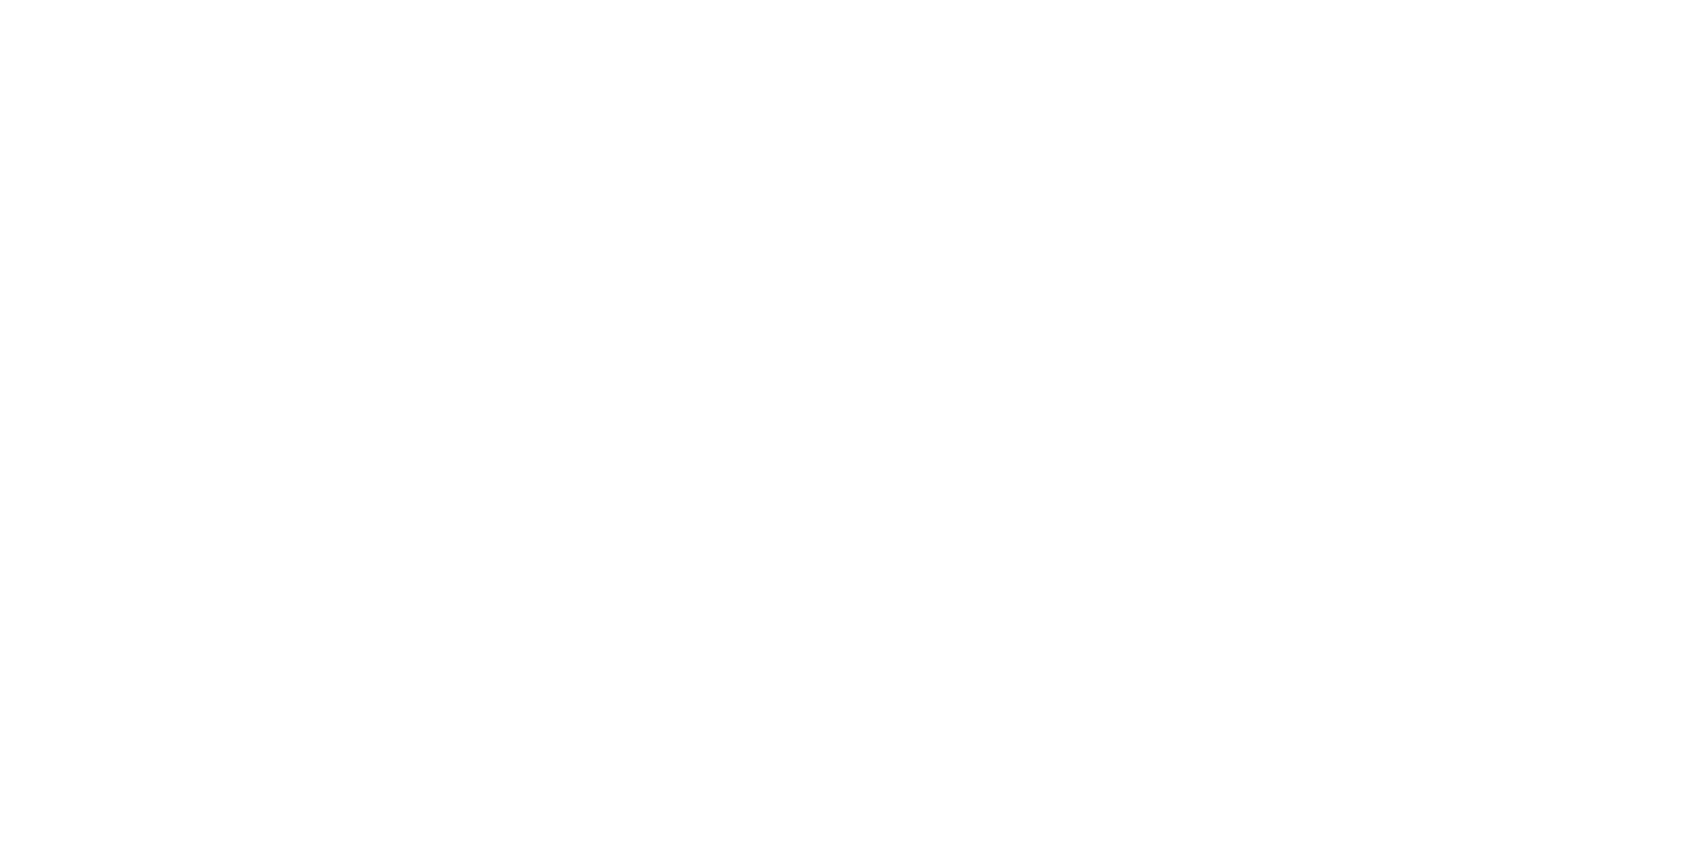 Ceed Learning - Logo White